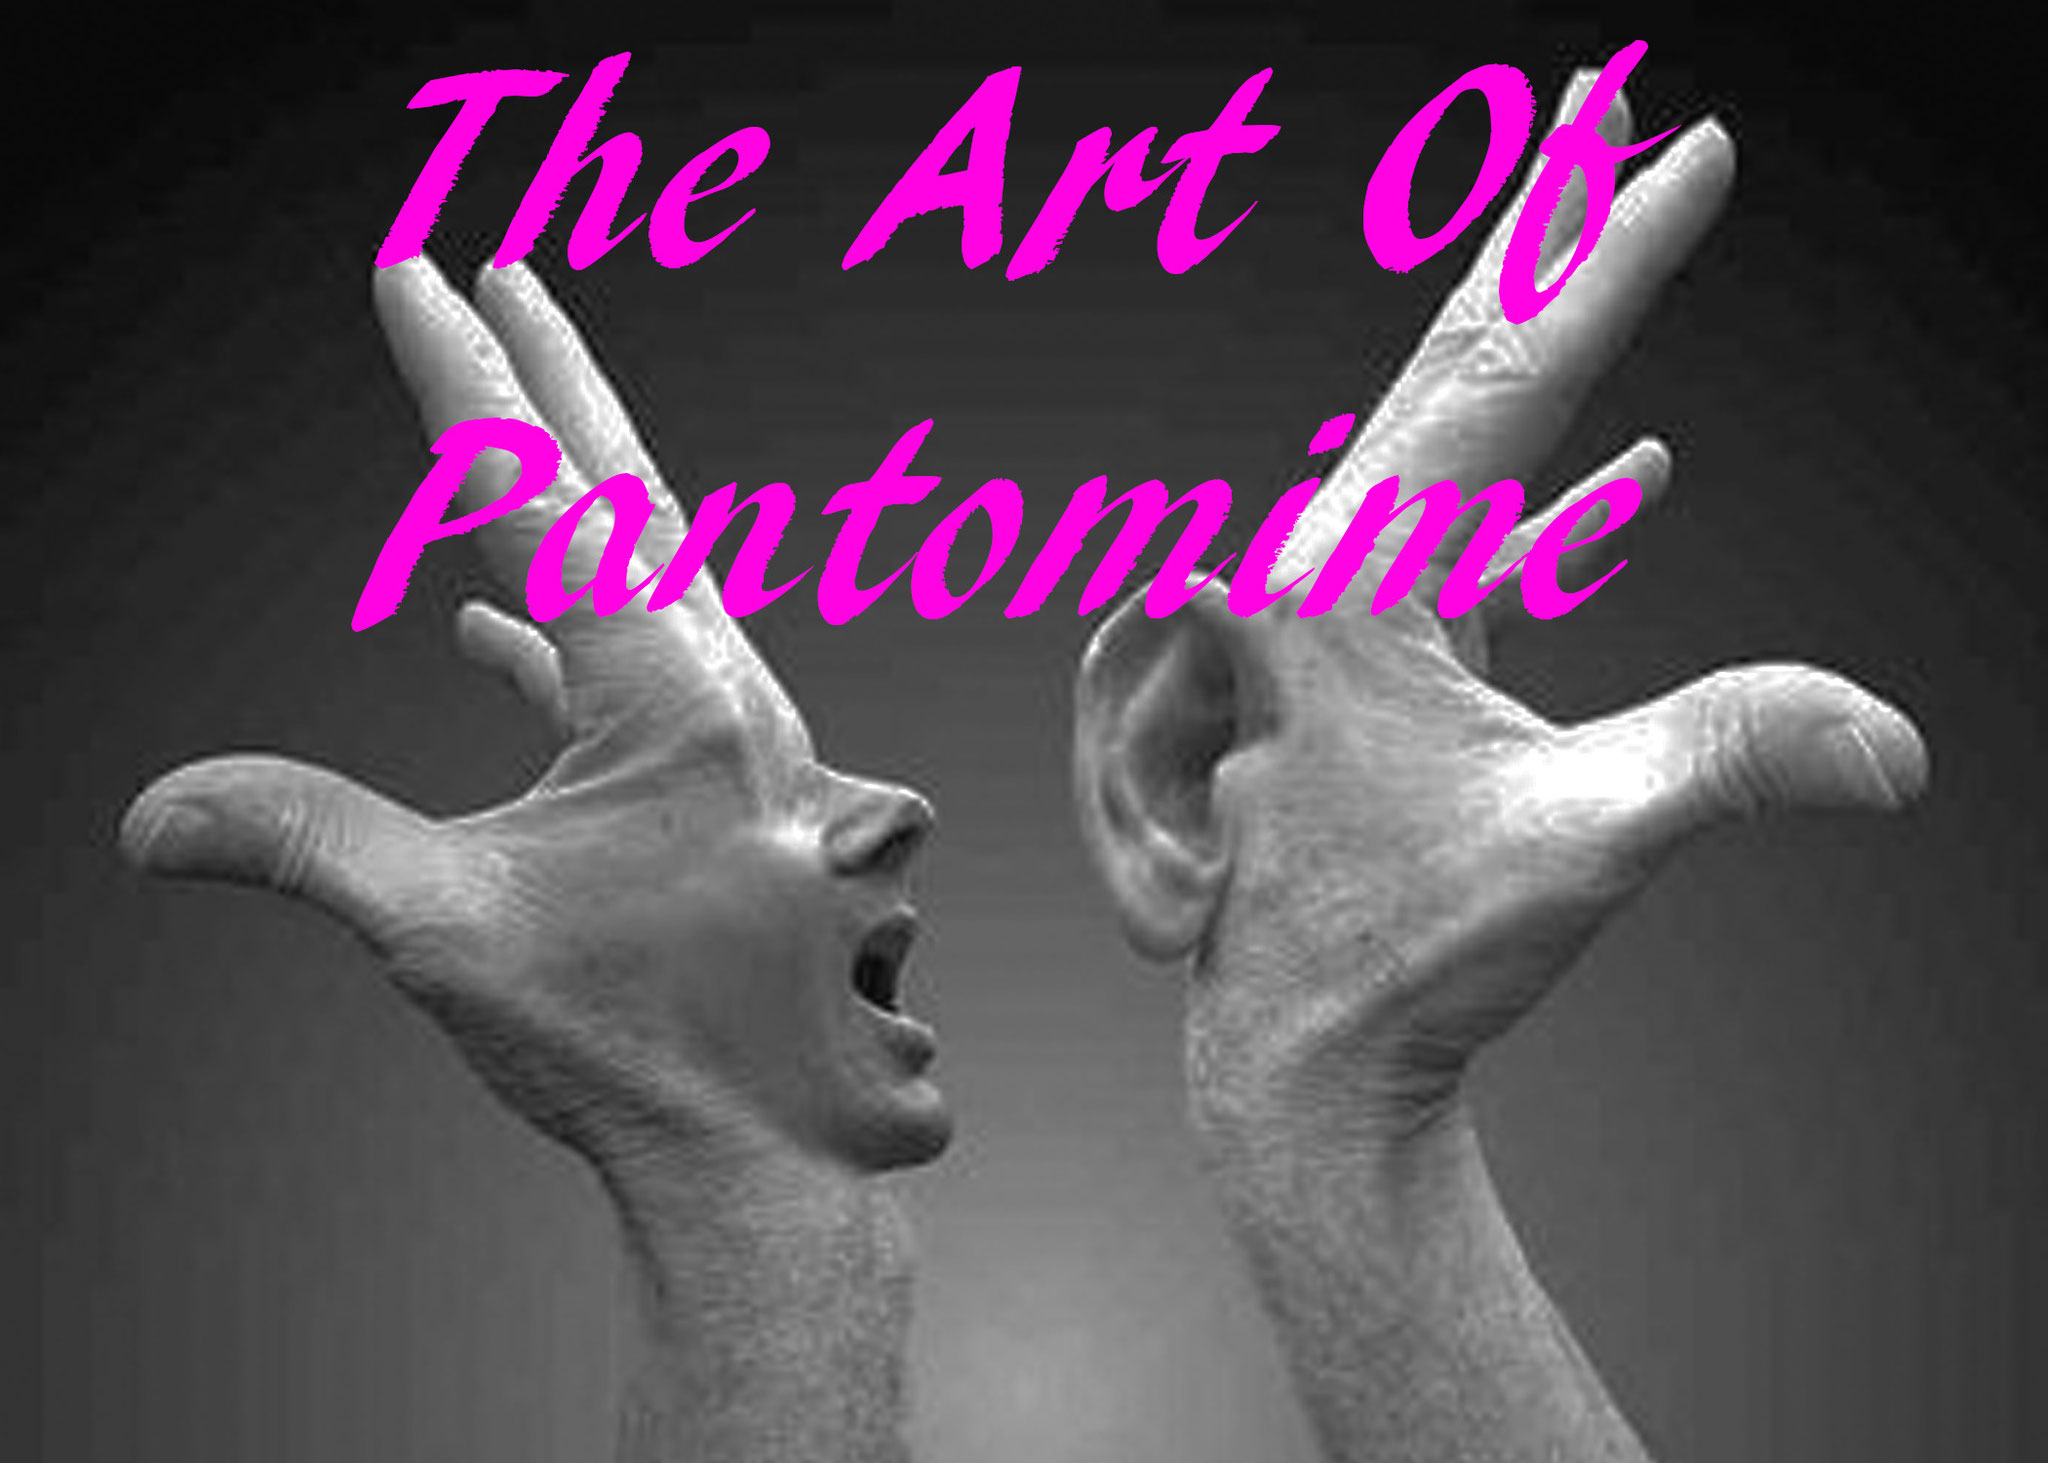 The Art Of Pantomime